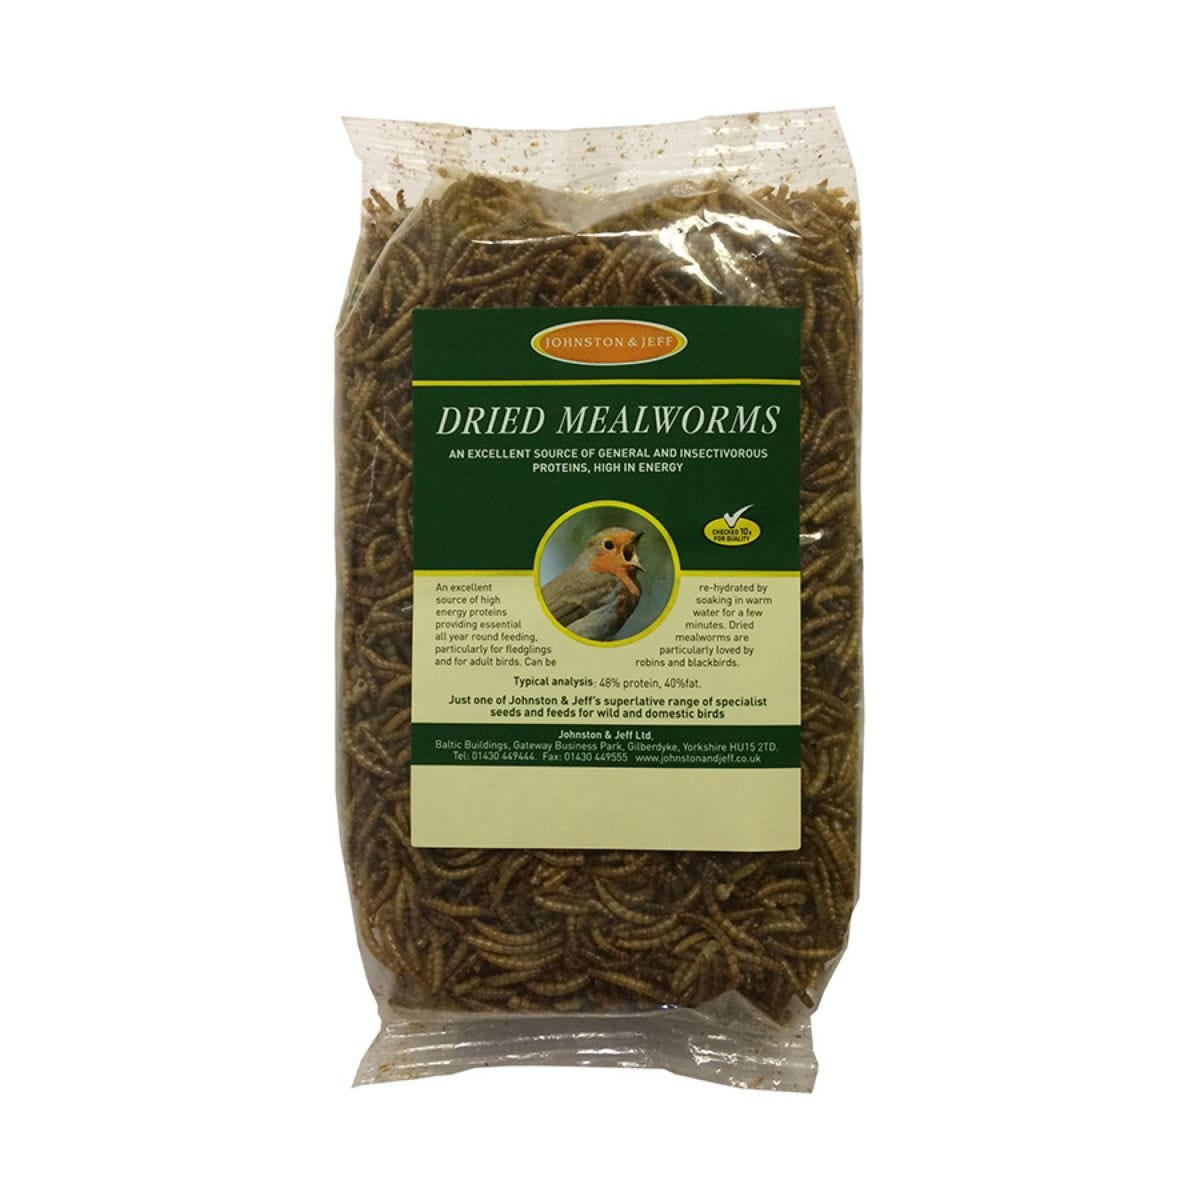 Johnston & Jeff Mealworms - 250g